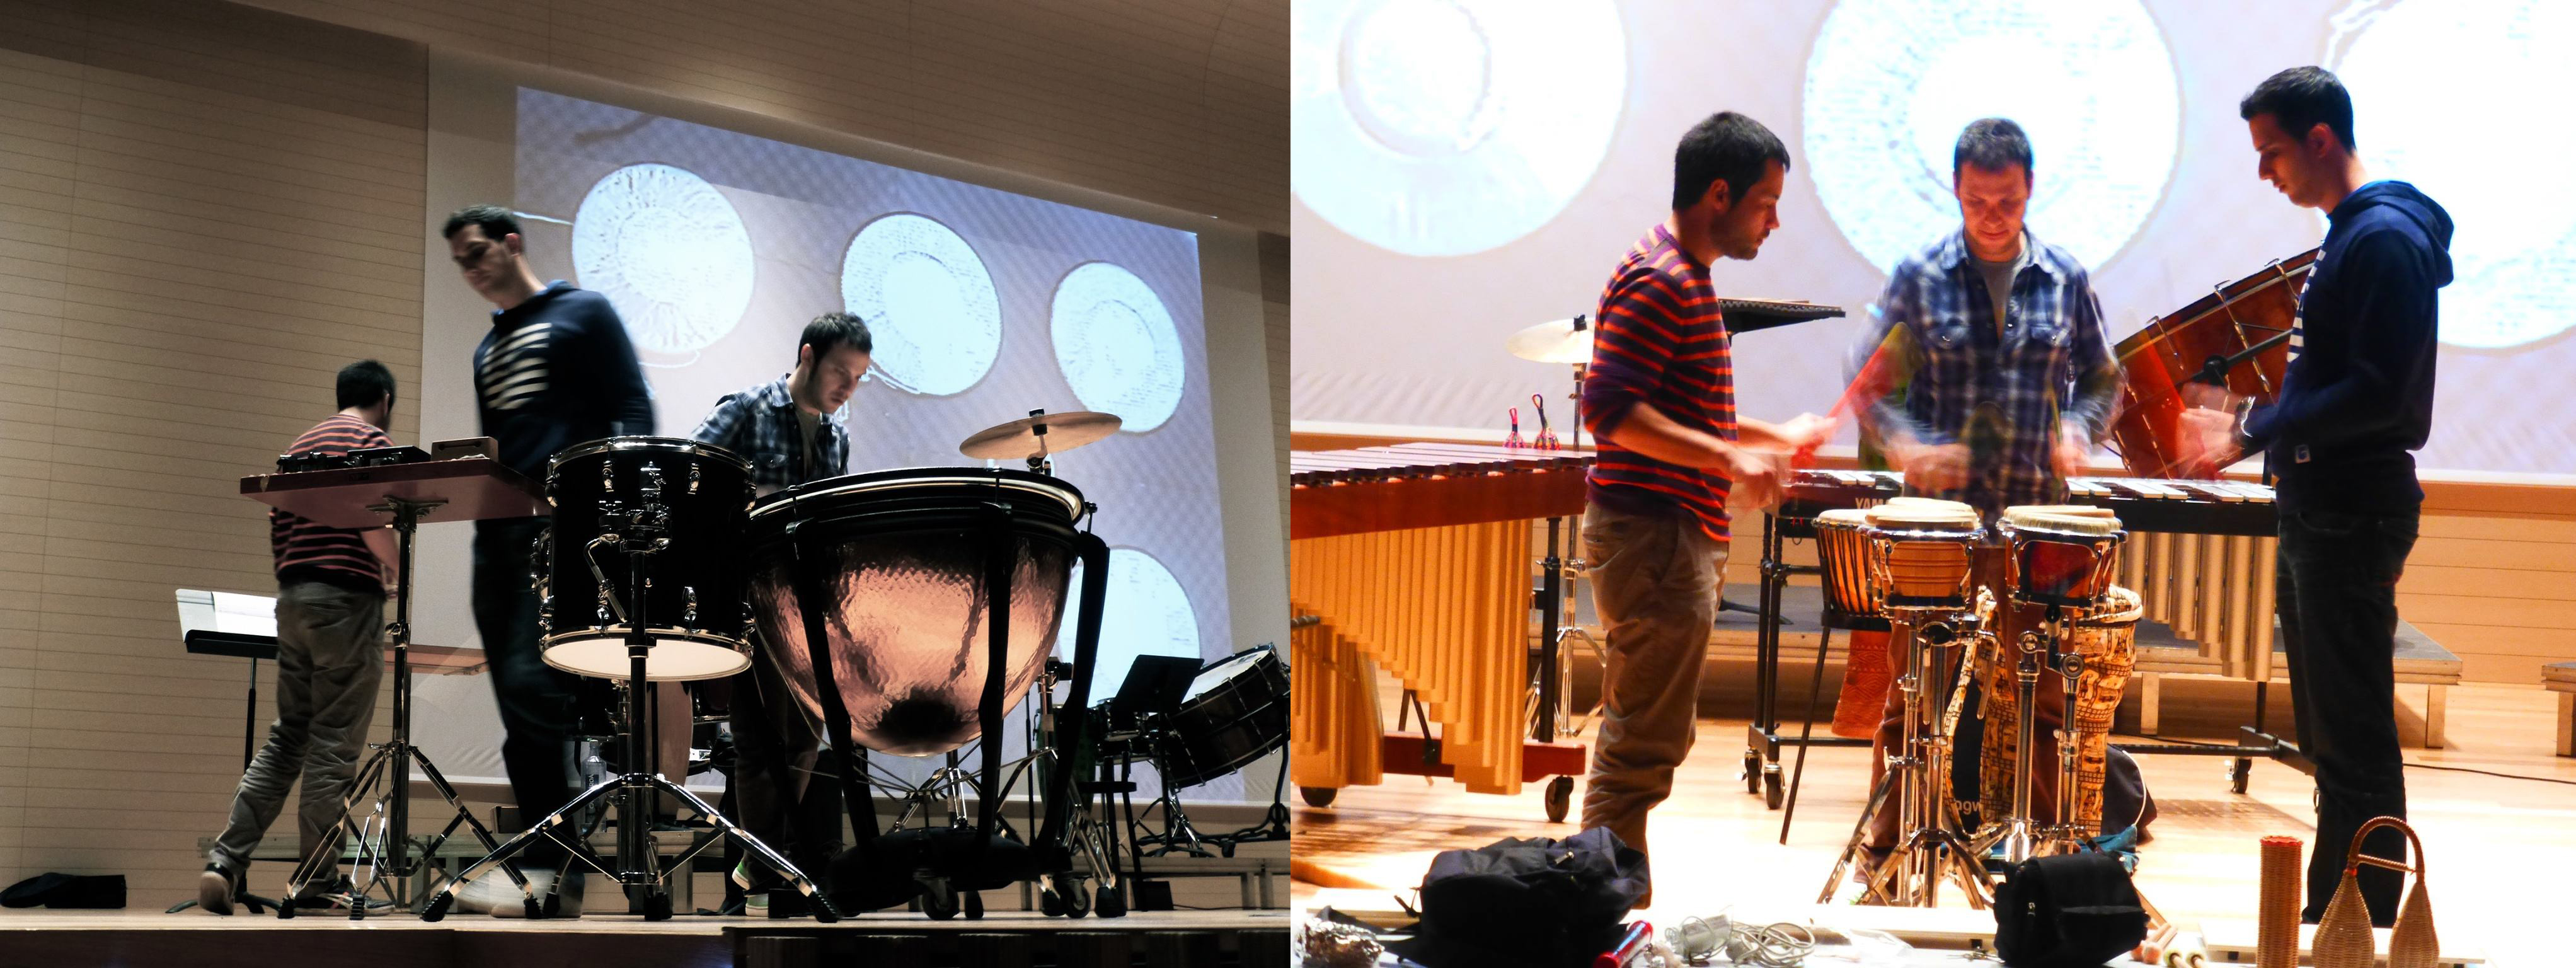 Ensemble-in-Residence: Alxarq Percussió